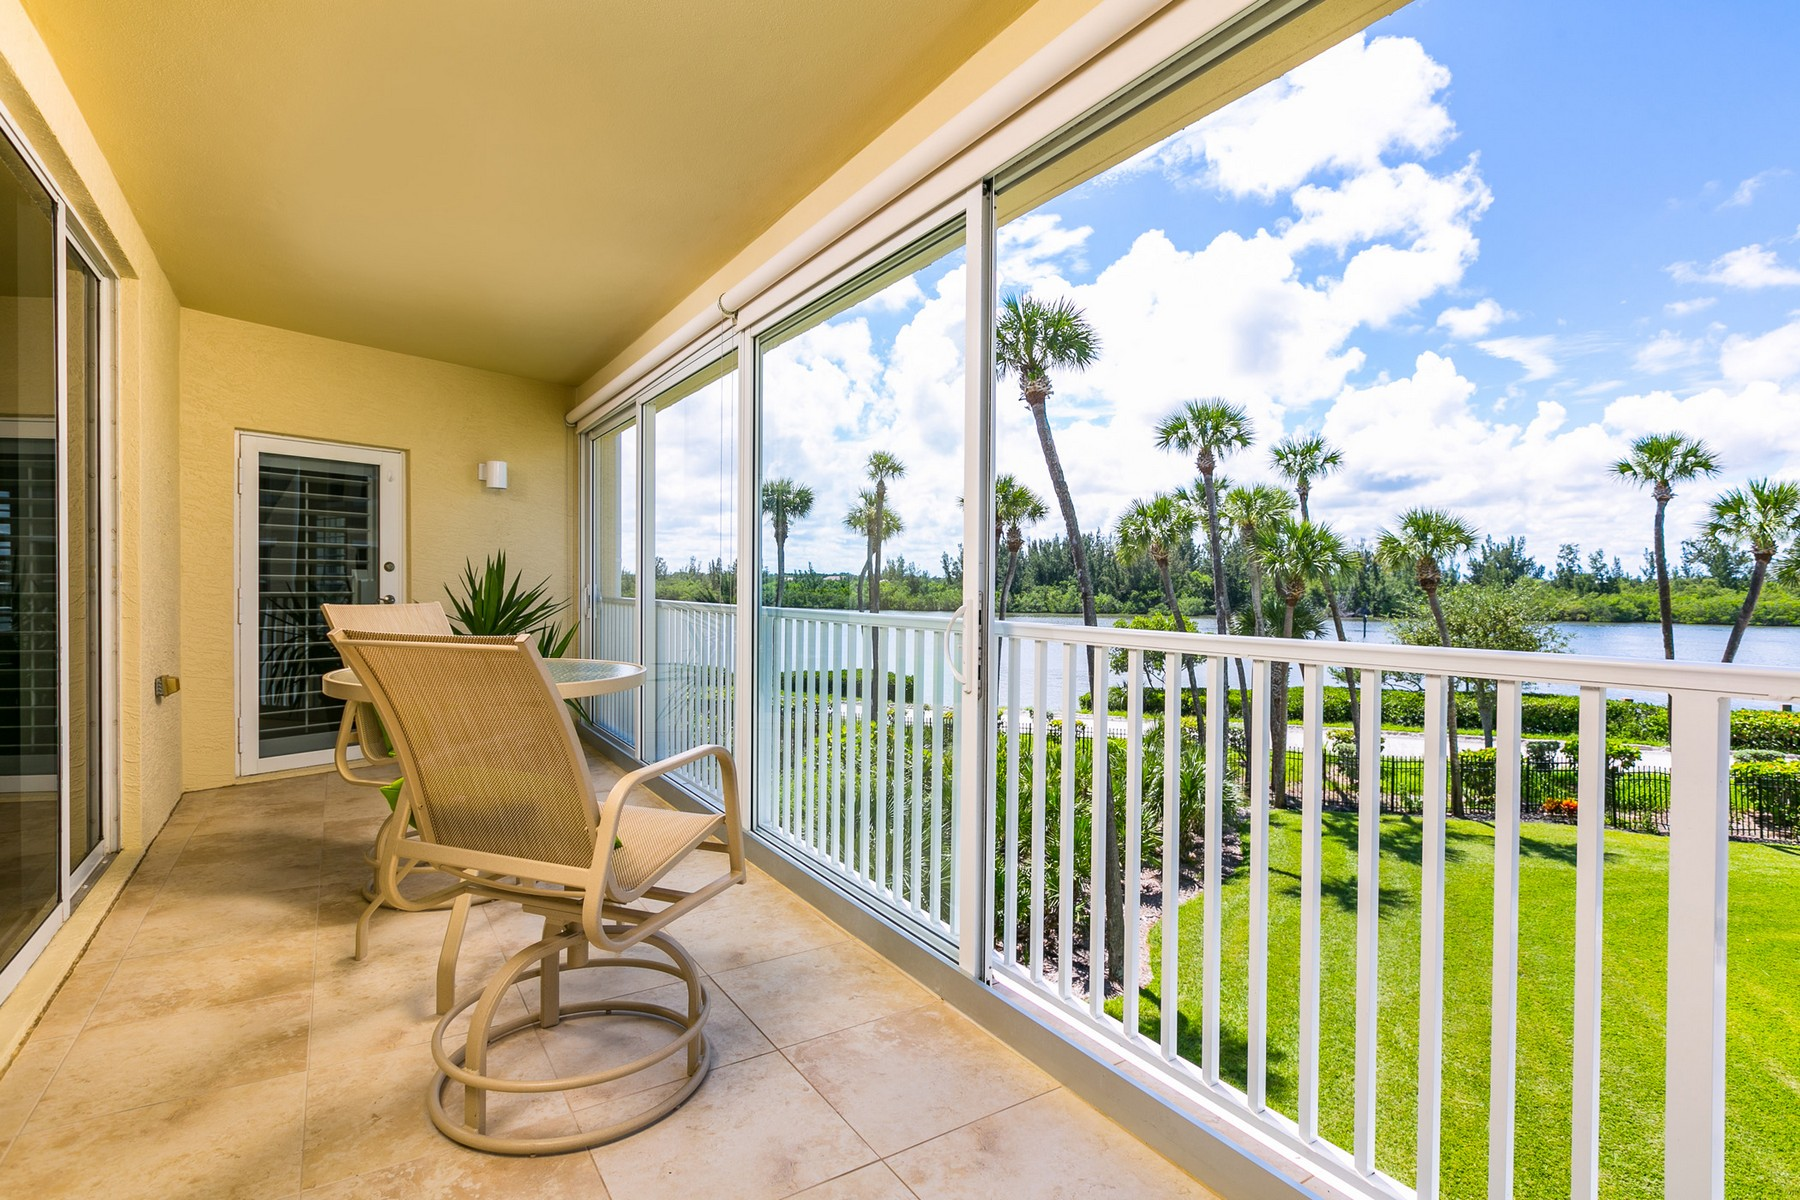 Condominium for Sale at Sea Oaks Villa by the River 8875 W Orchid Island Circle #304 Vero Beach, Florida 32963 United States